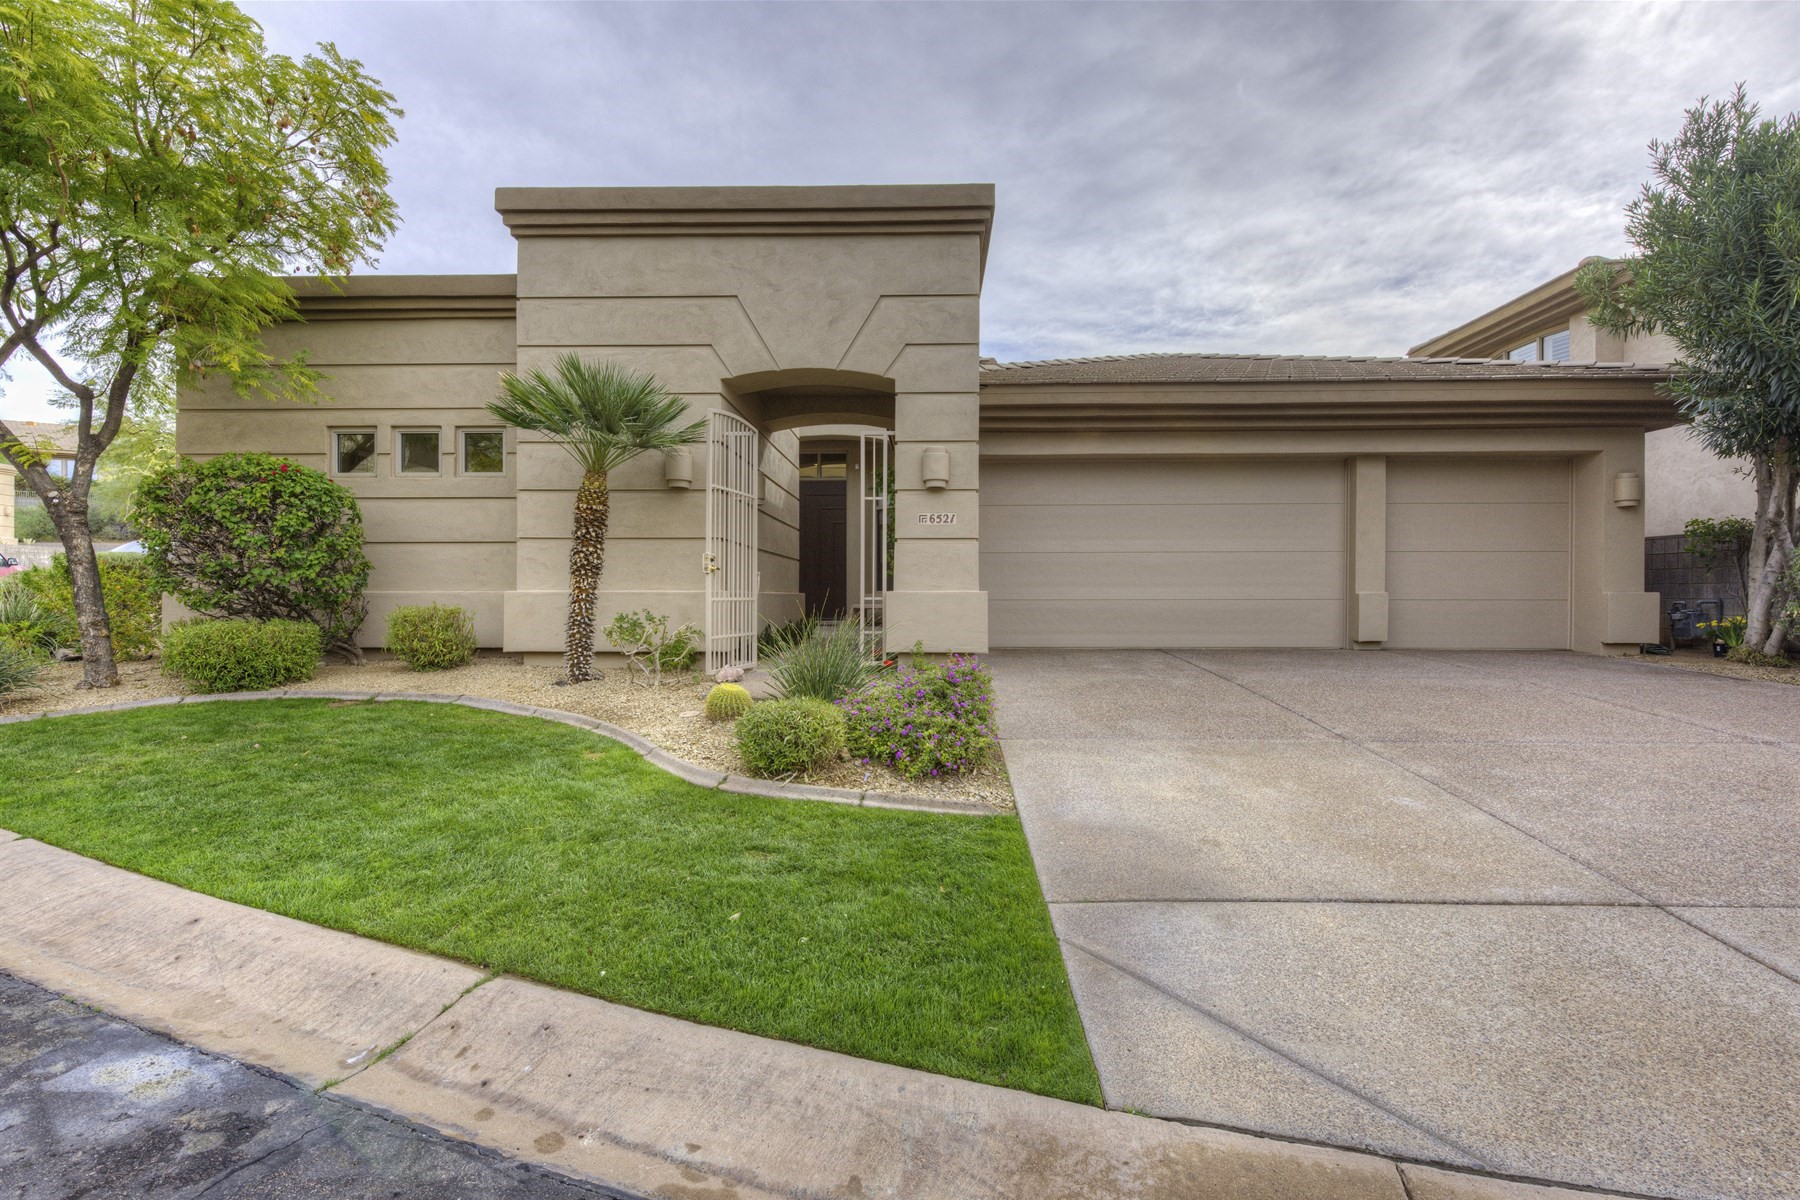 Single Family Home for Sale at Beautifully renovated home in Biltmore Hillside Villa 6521 N 27th St N Phoenix, Arizona, 85016 United States